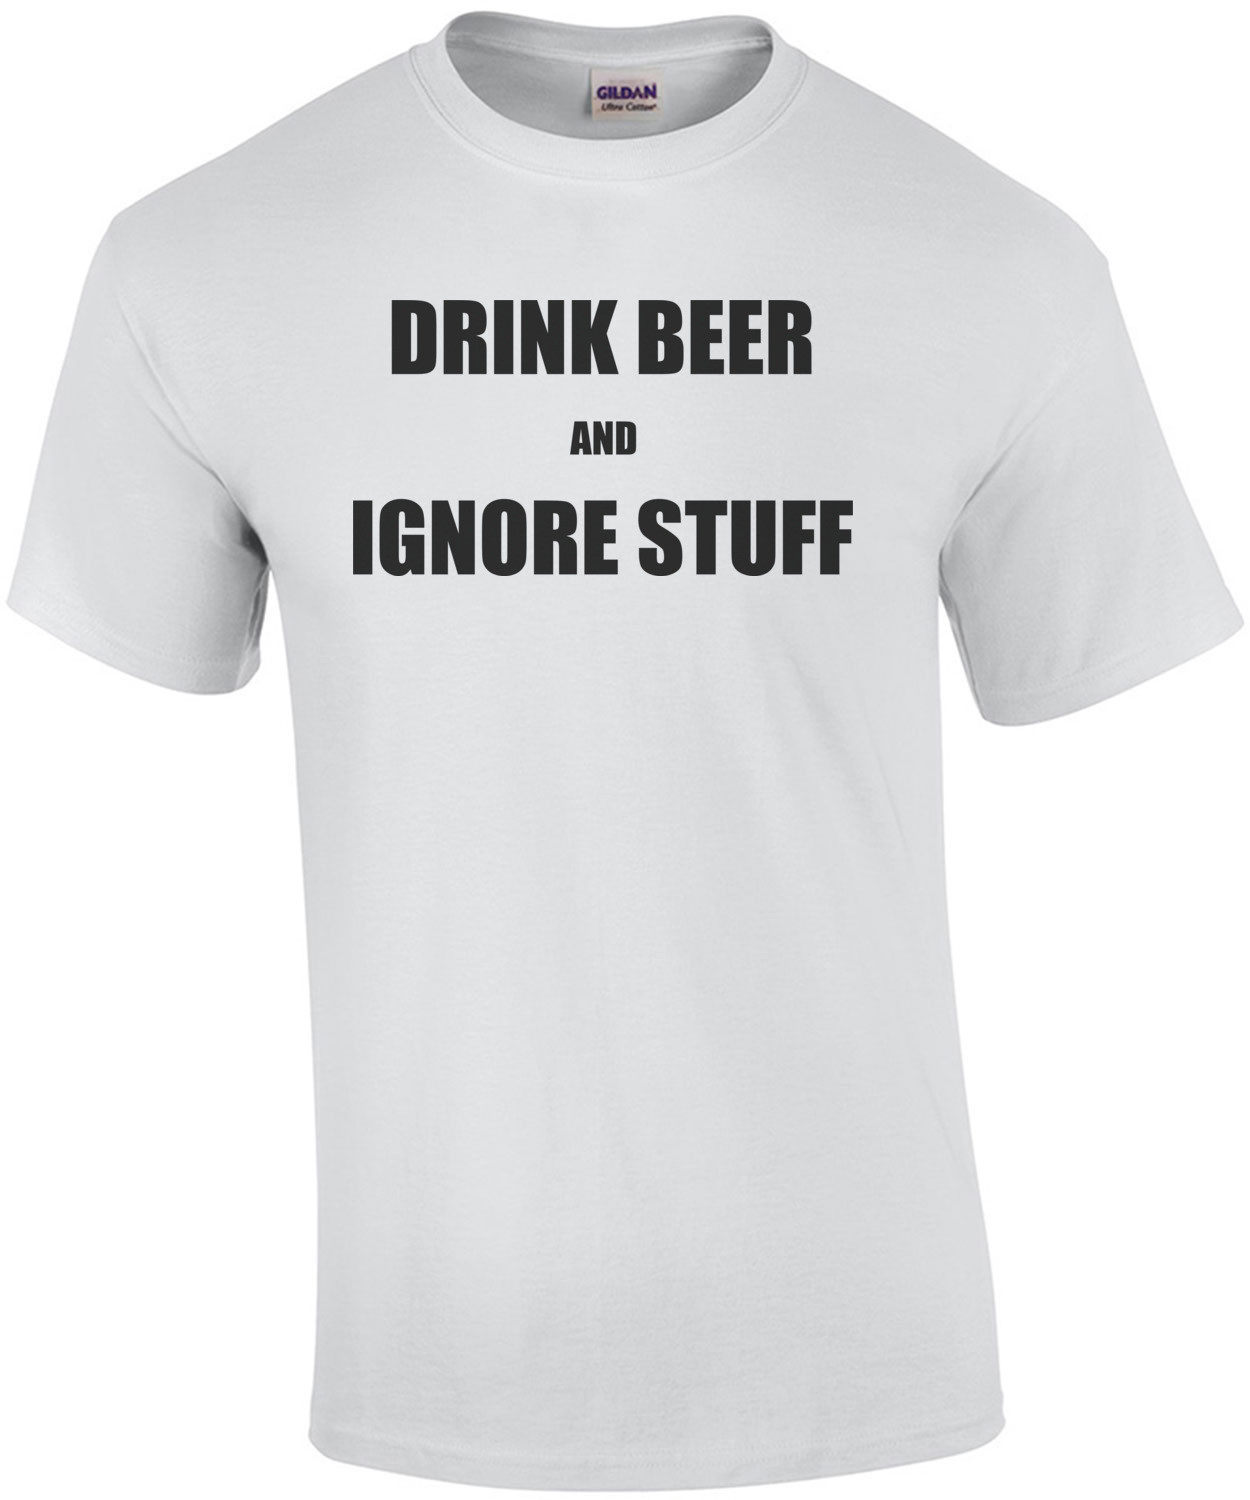 Drink Beer and Ignore Stuff Drinking Shirt